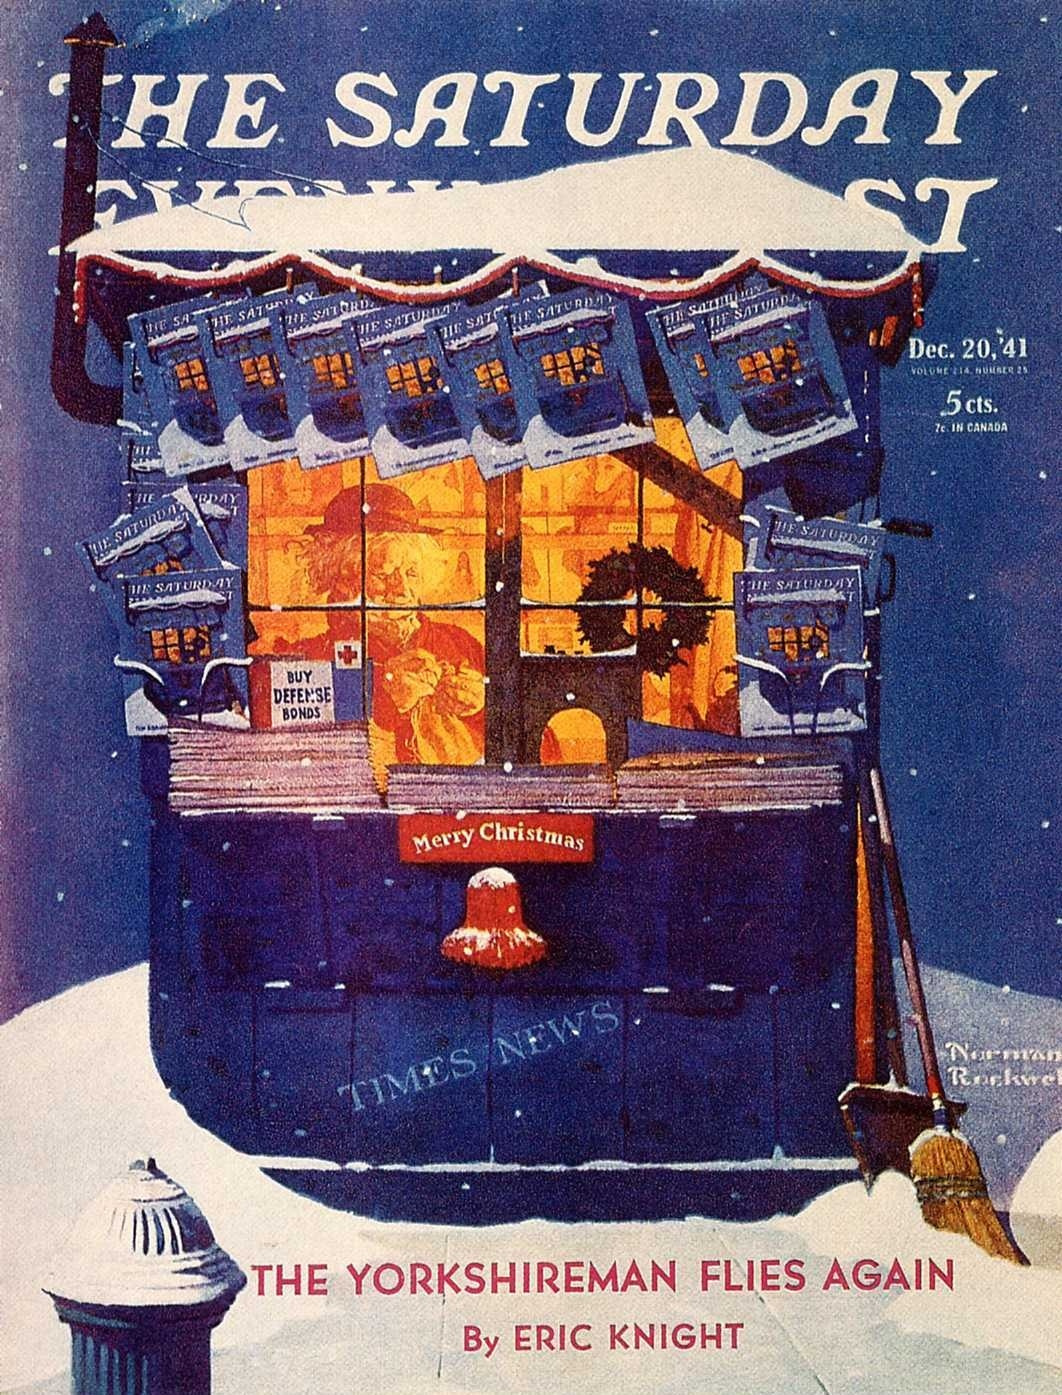 """Norman Rockwell. Newsstand in the snow. Cover of """"The Saturday Evening Post"""" (20 December 1941)"""